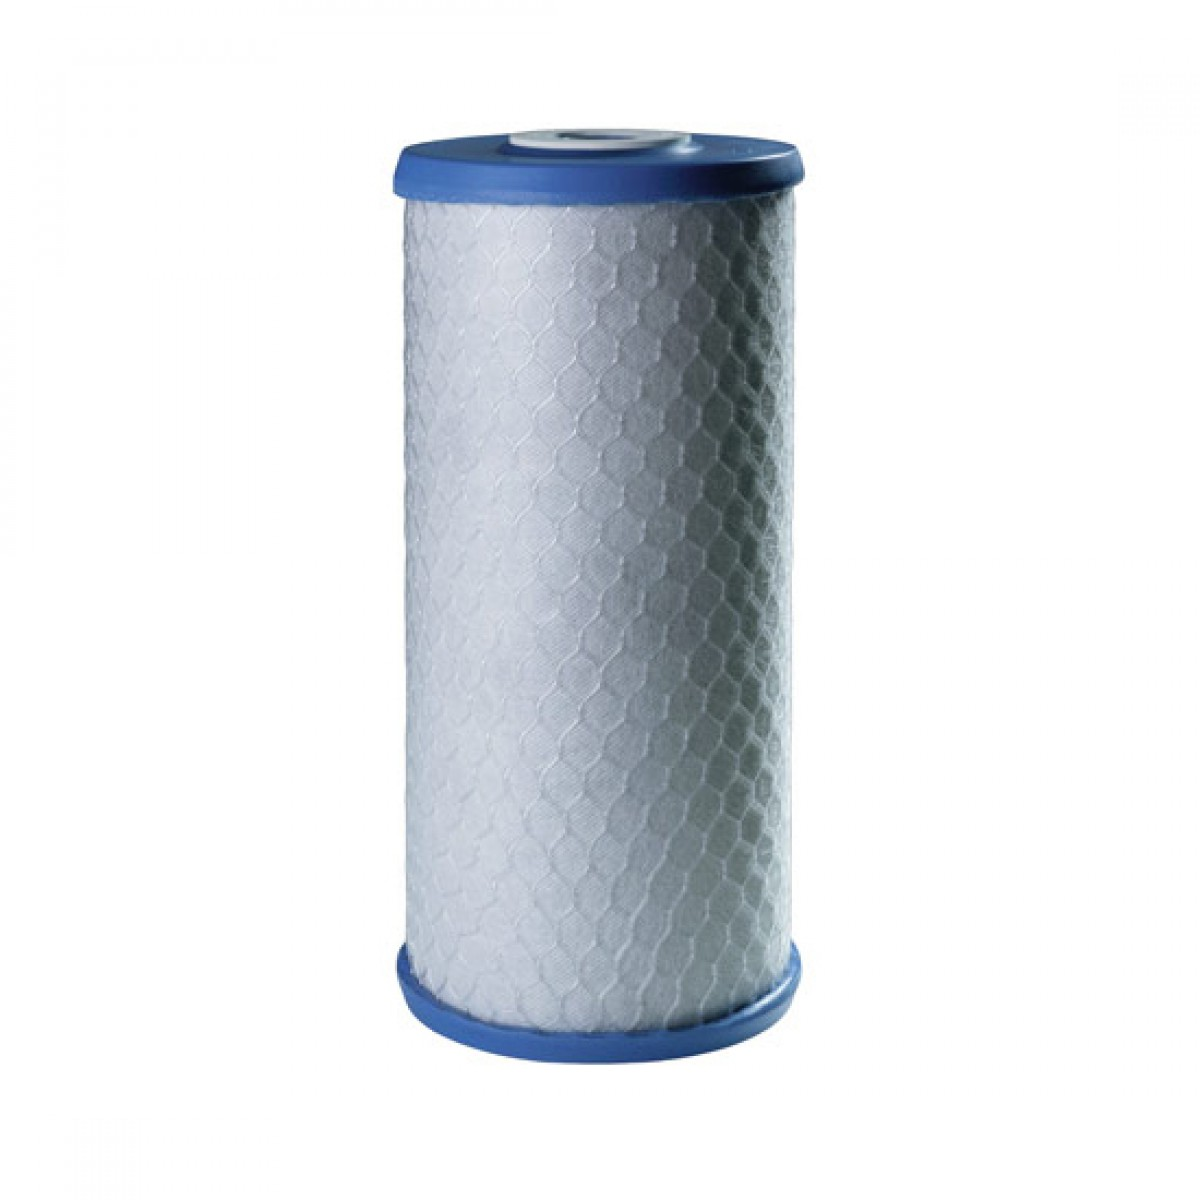 Cb6 Omnifilter Whole House Filter Replacement Cartridge